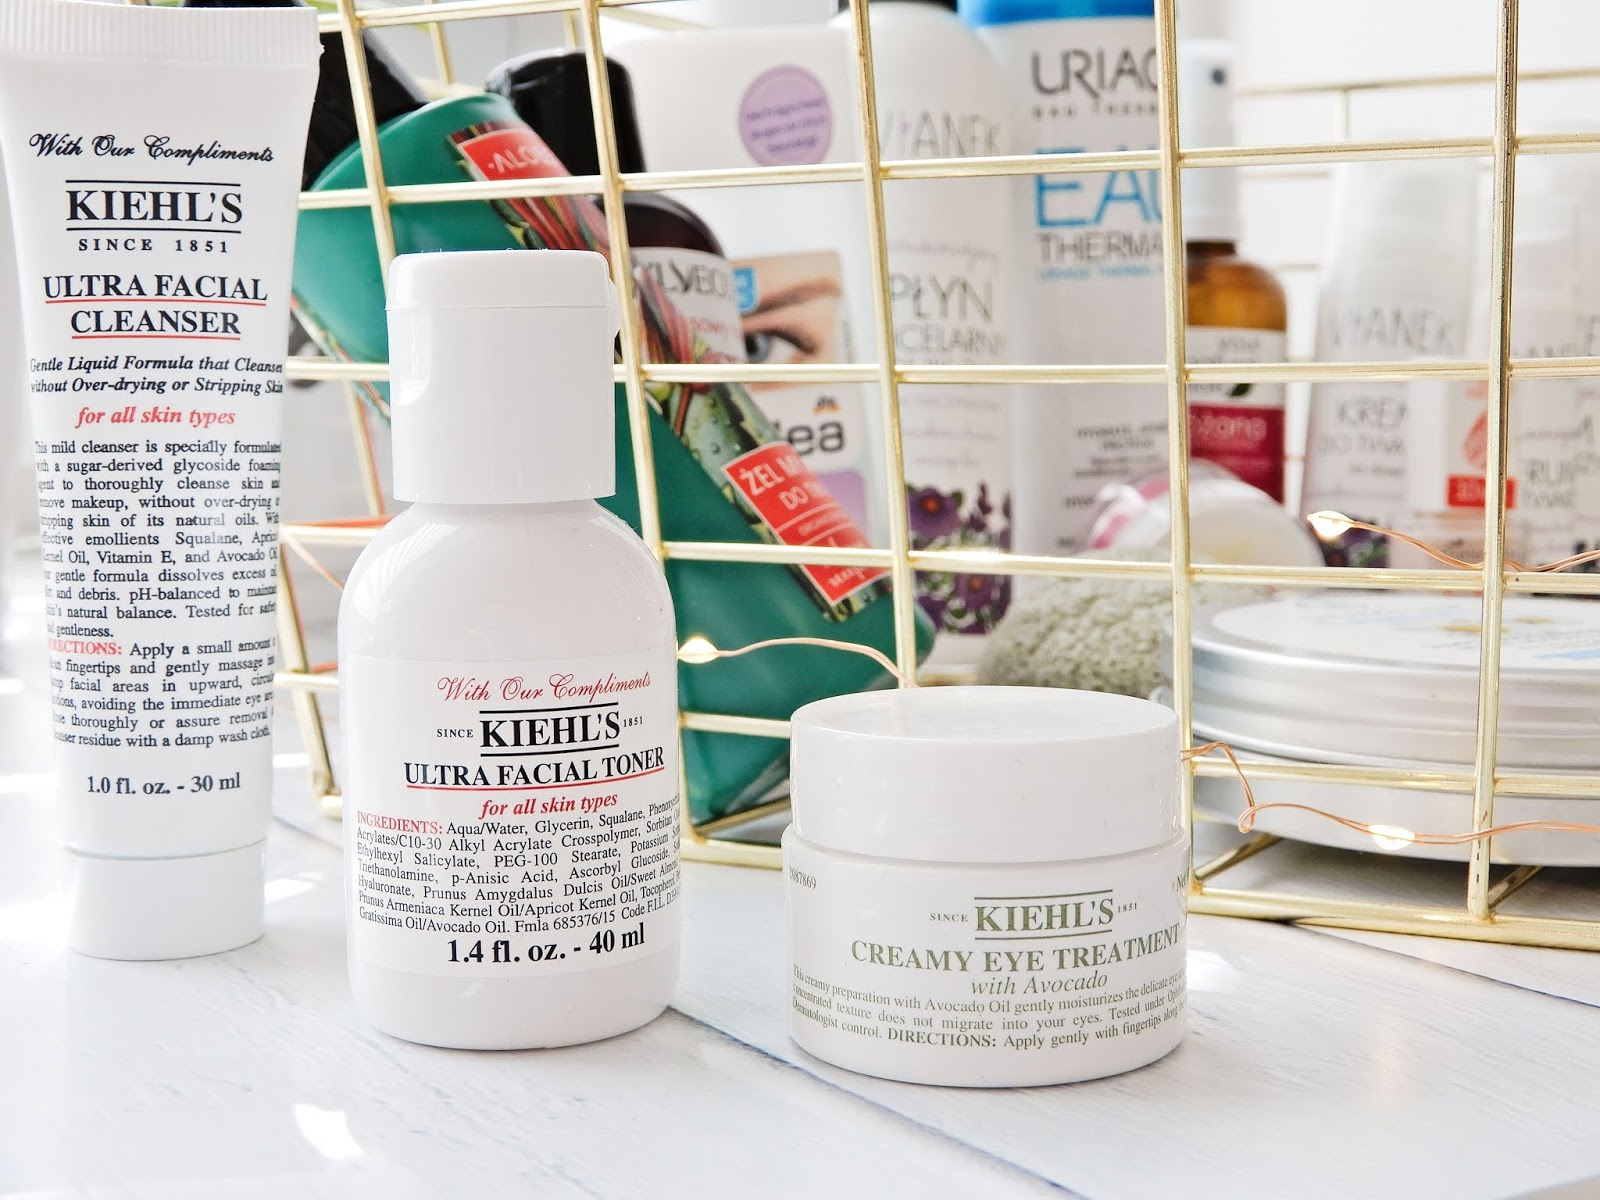 Kiehl's Ultra Facial Cleanser, Kiehl's Ultra Facial Toner, Kiehl's Creamy Eye Treatment with Avocado,